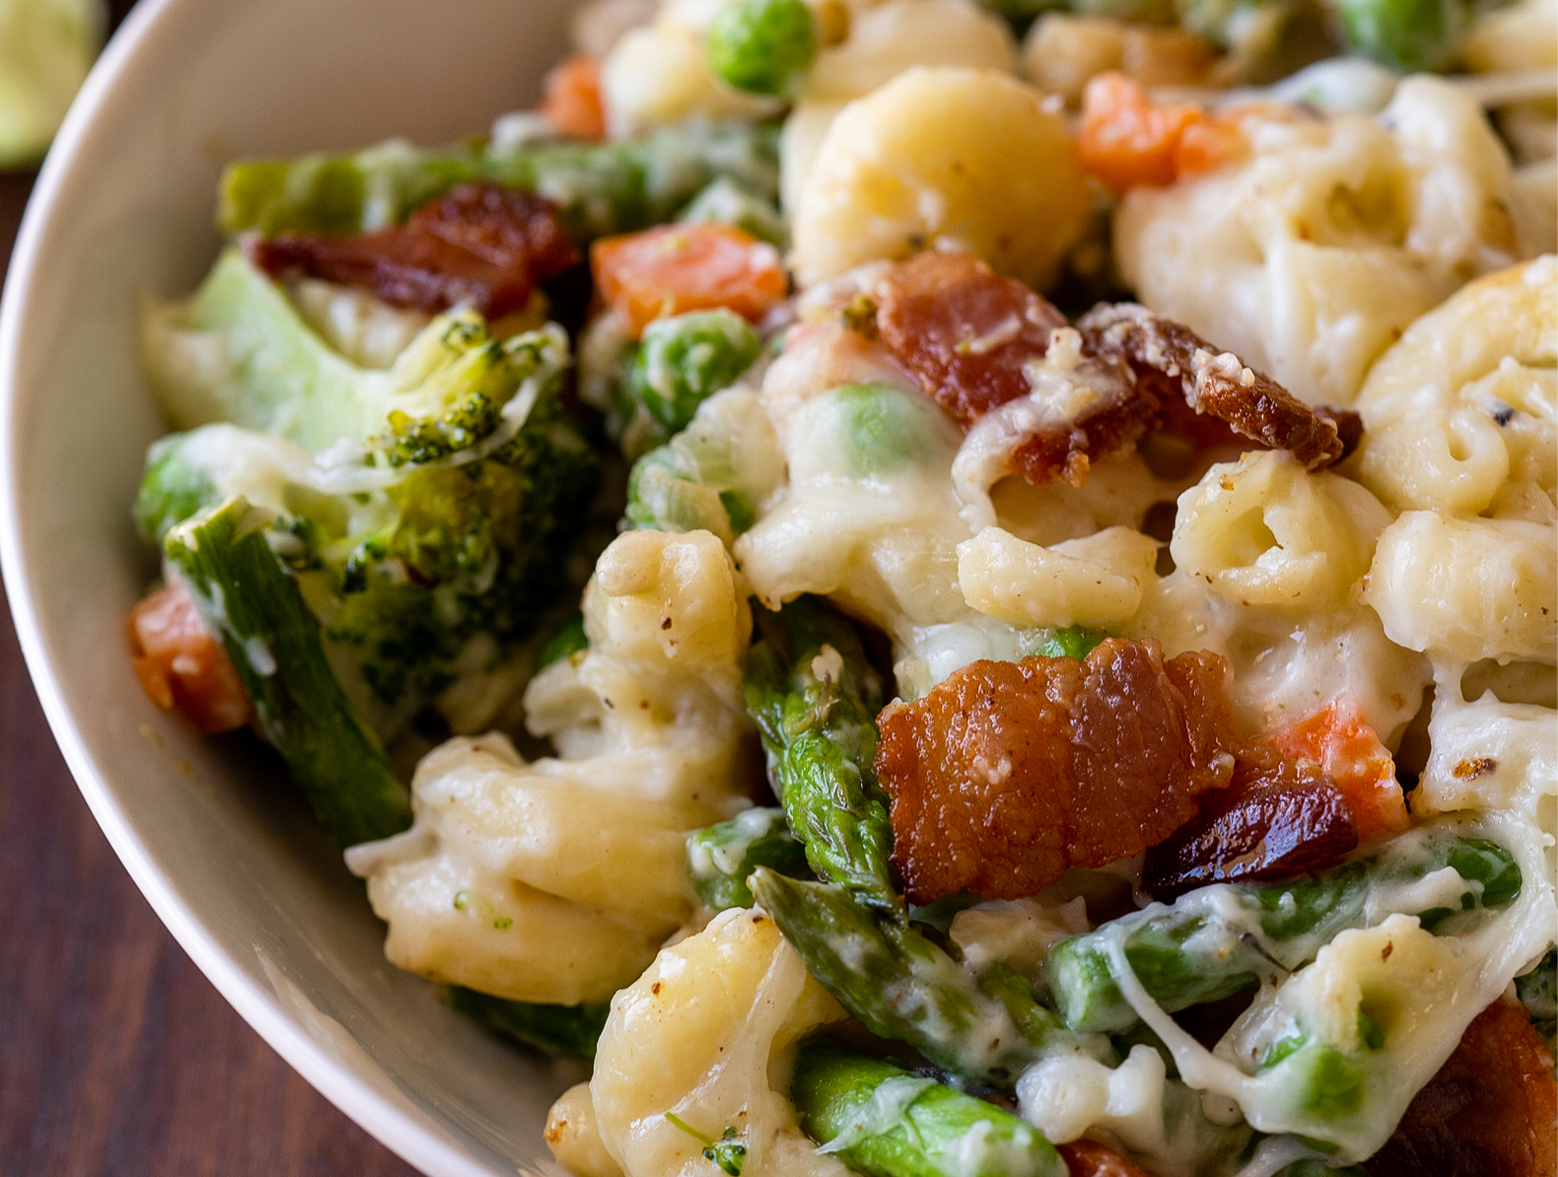 Veggie Baked Macaroni and Cheese